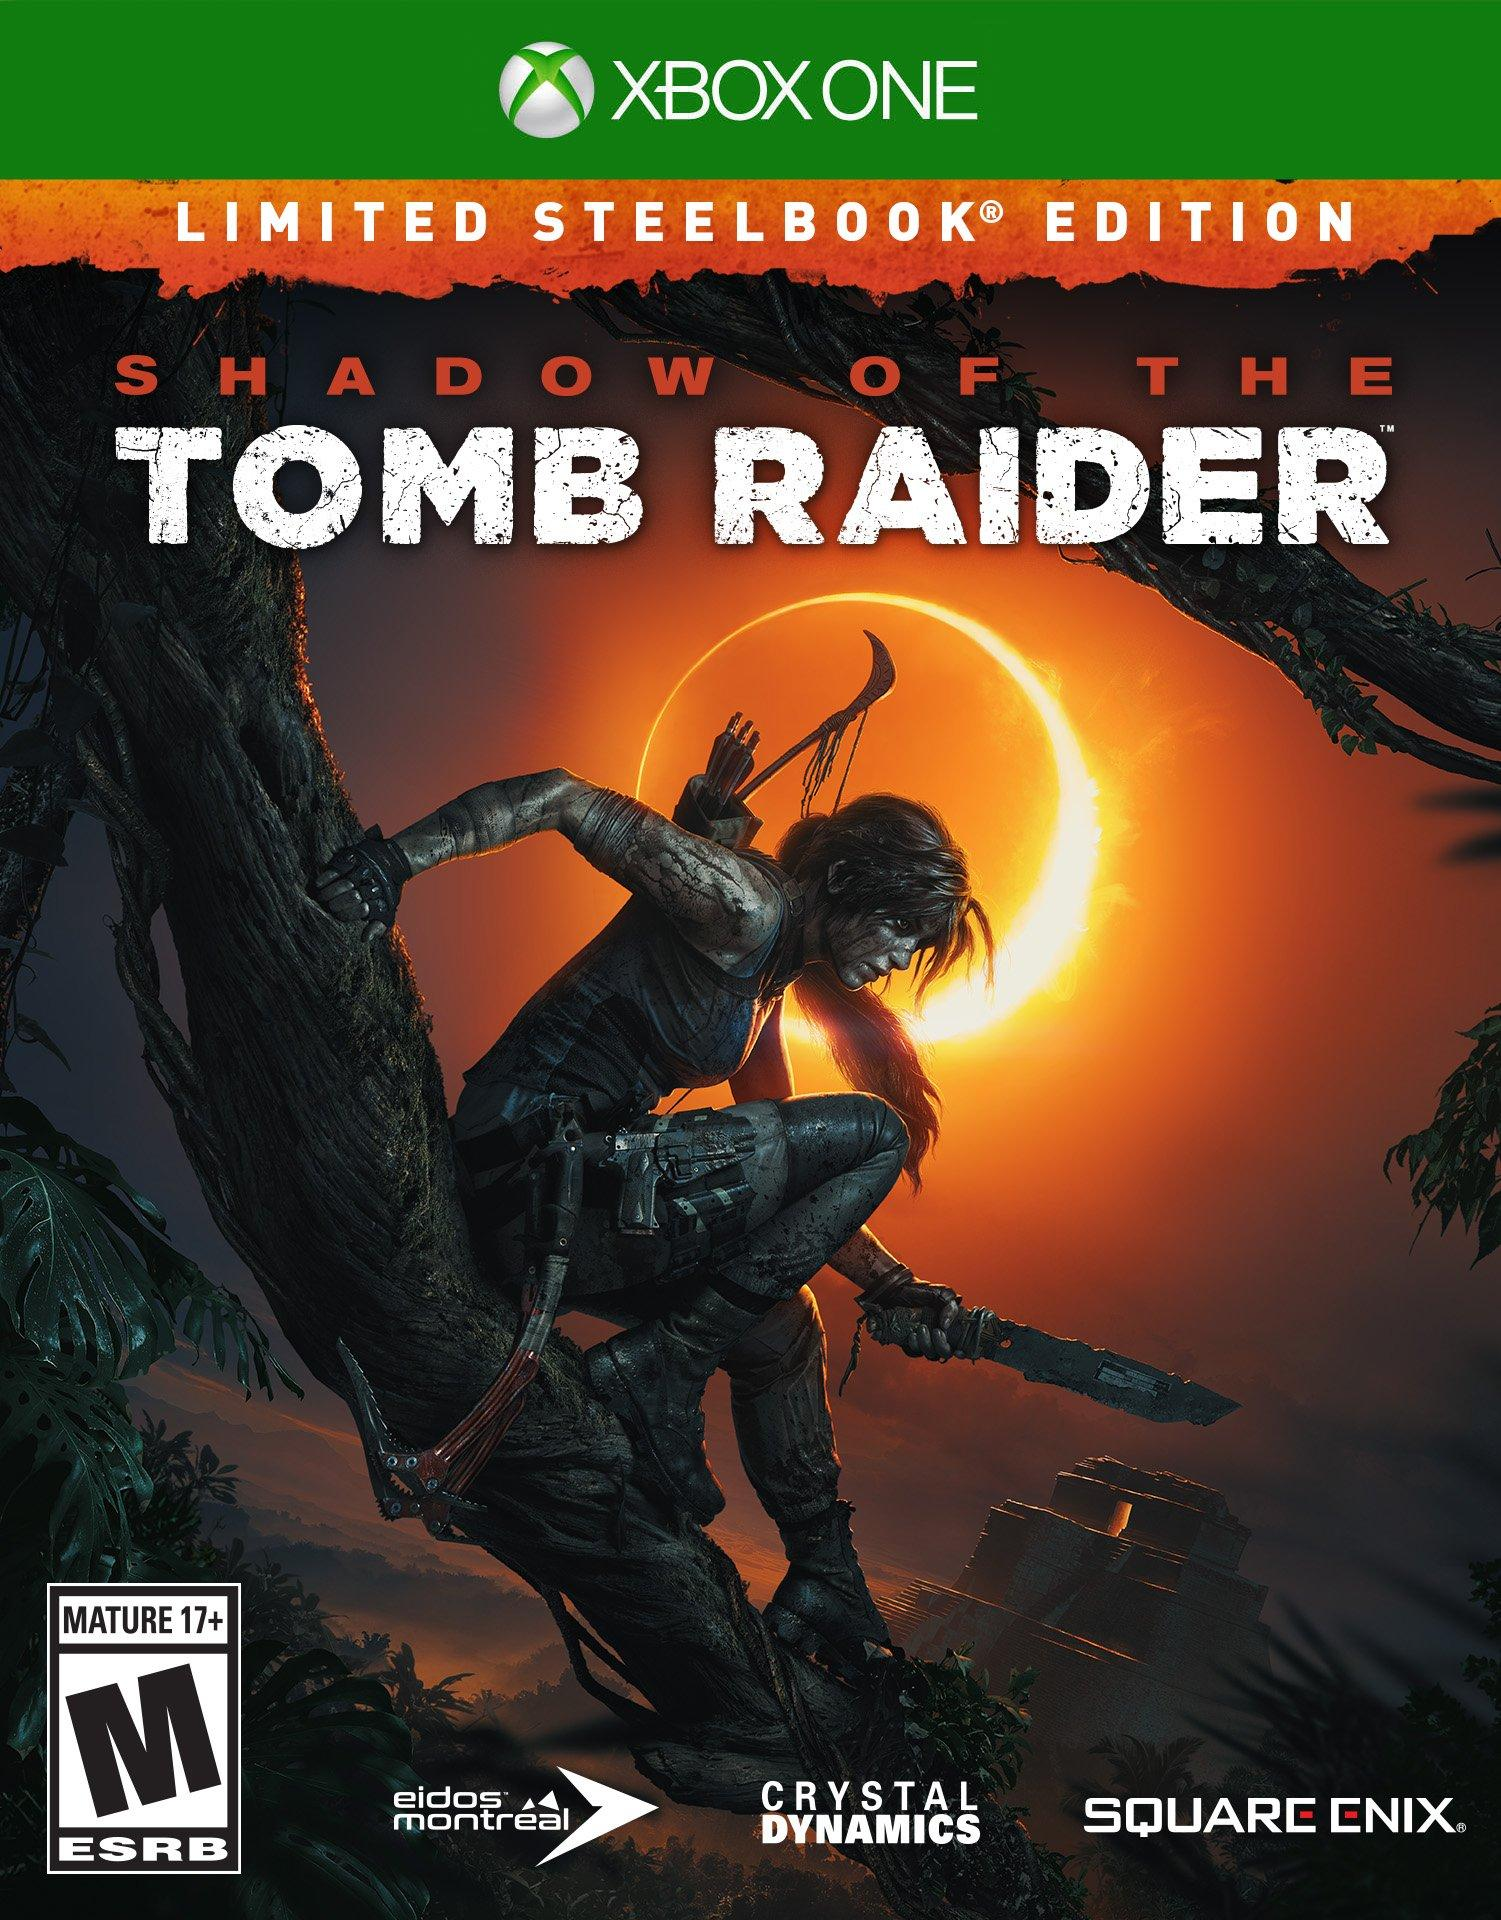 Shadow of the Tomb Raider Limited Steelbook Edition (Xbox One) - $19.99